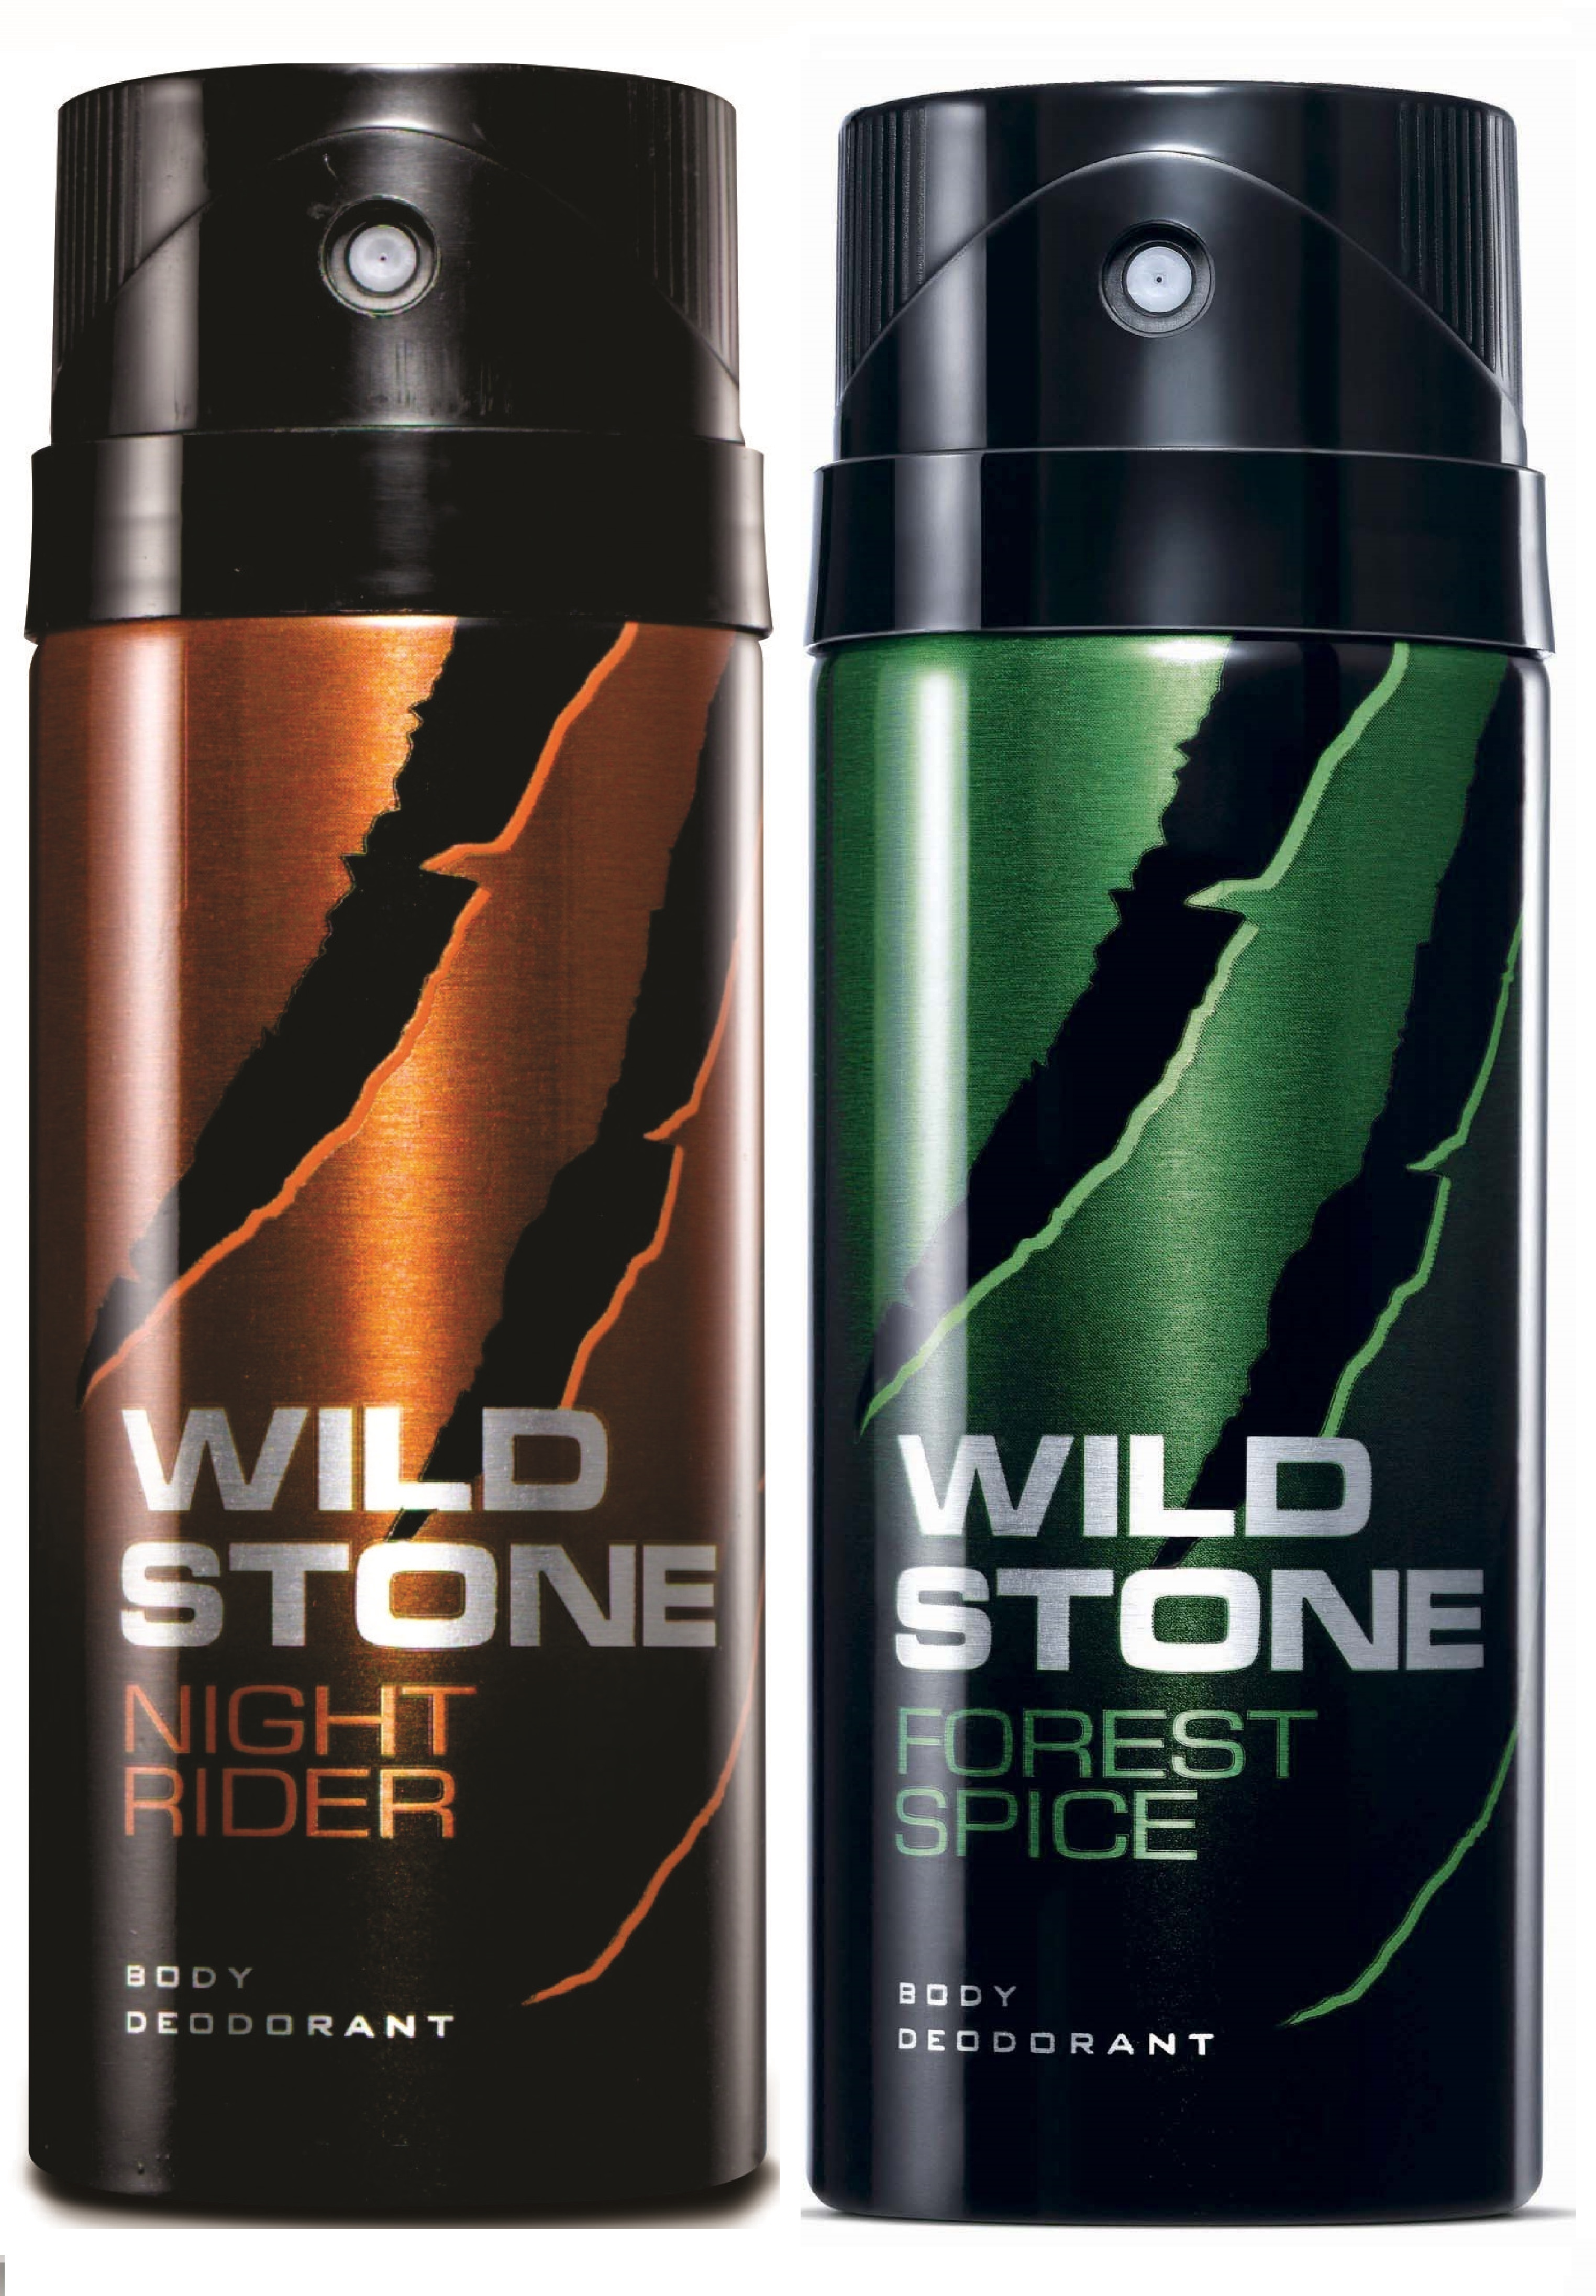 Wild Stone Forest Spice & Night Rider Body Deo - 150 ml each (Pack of 2)